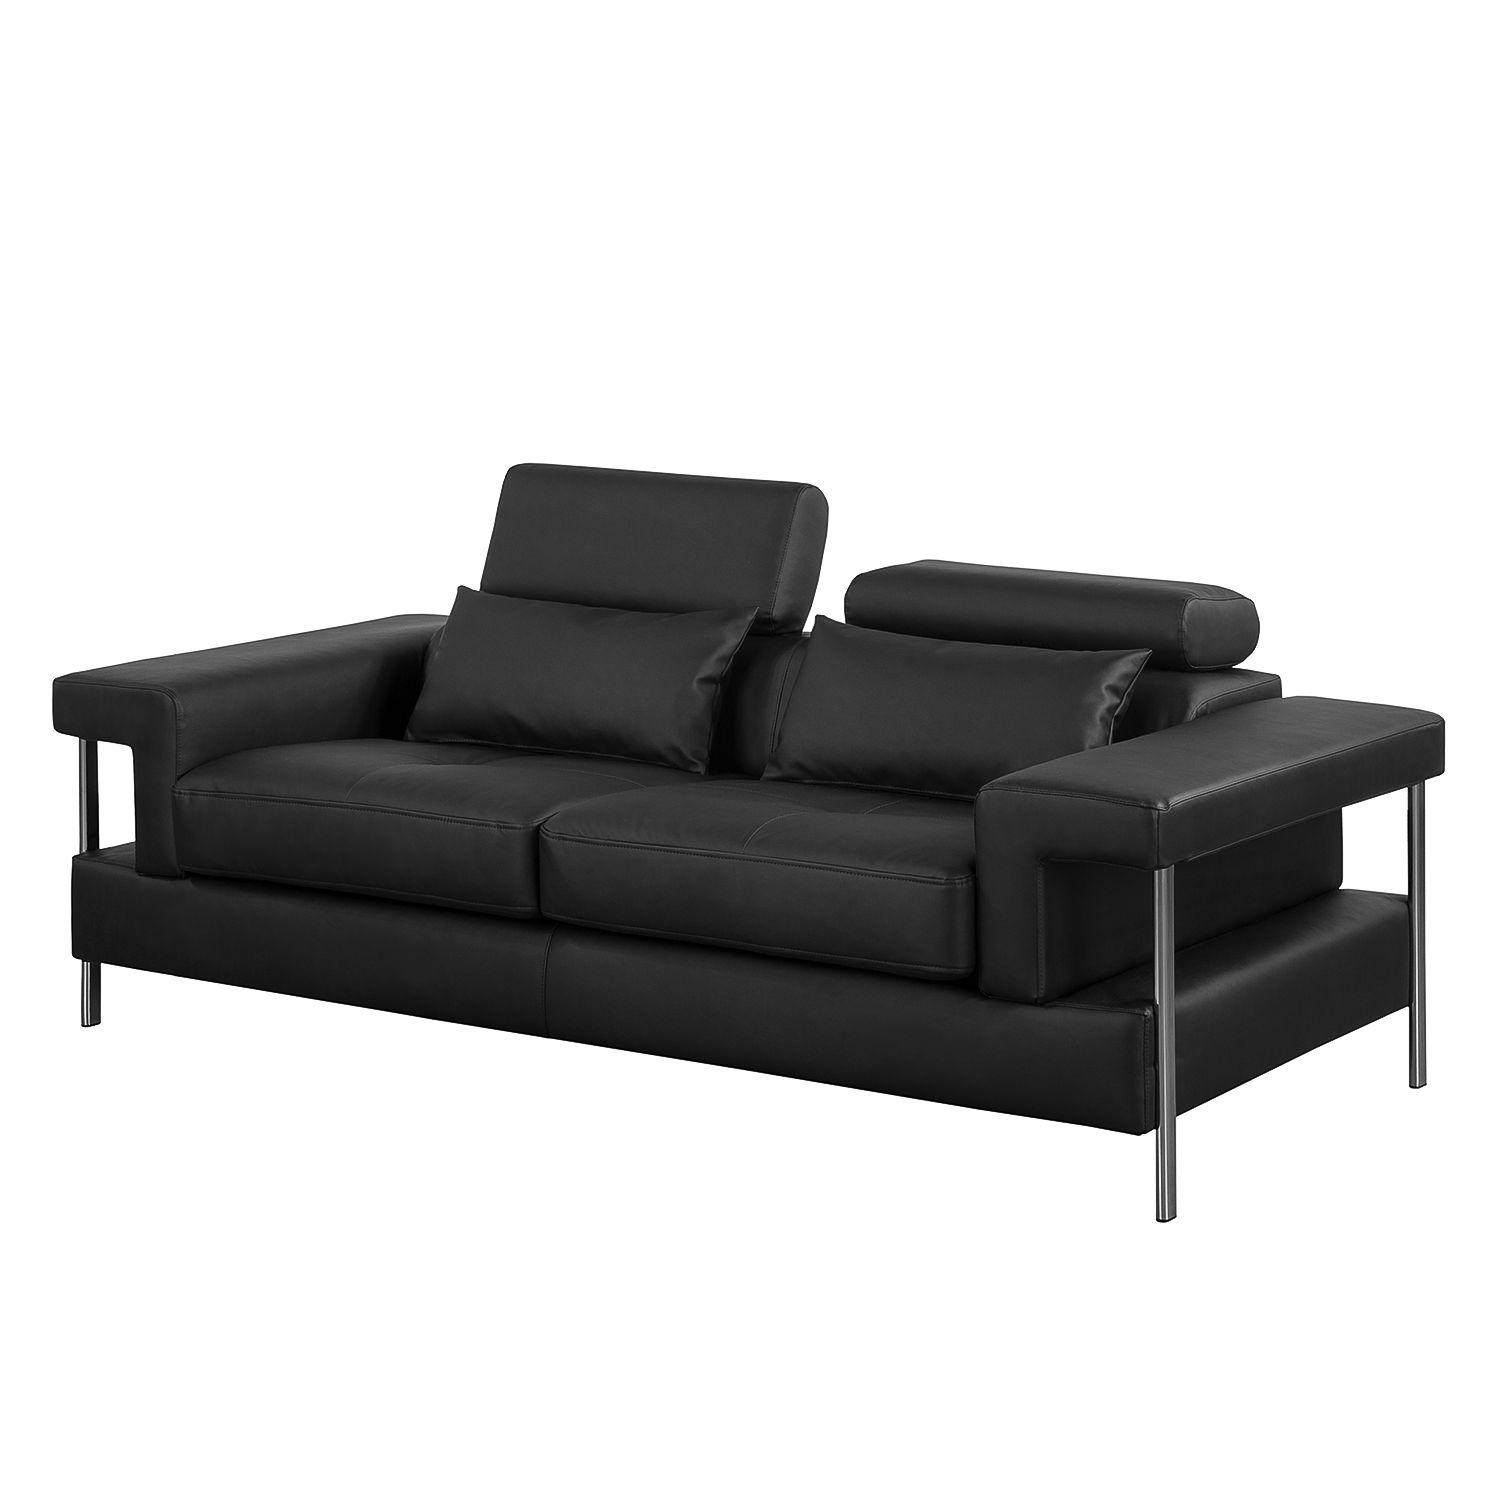 kunstleder sofa schwarz sofa kunstleder schwarz b rostuhl. Black Bedroom Furniture Sets. Home Design Ideas